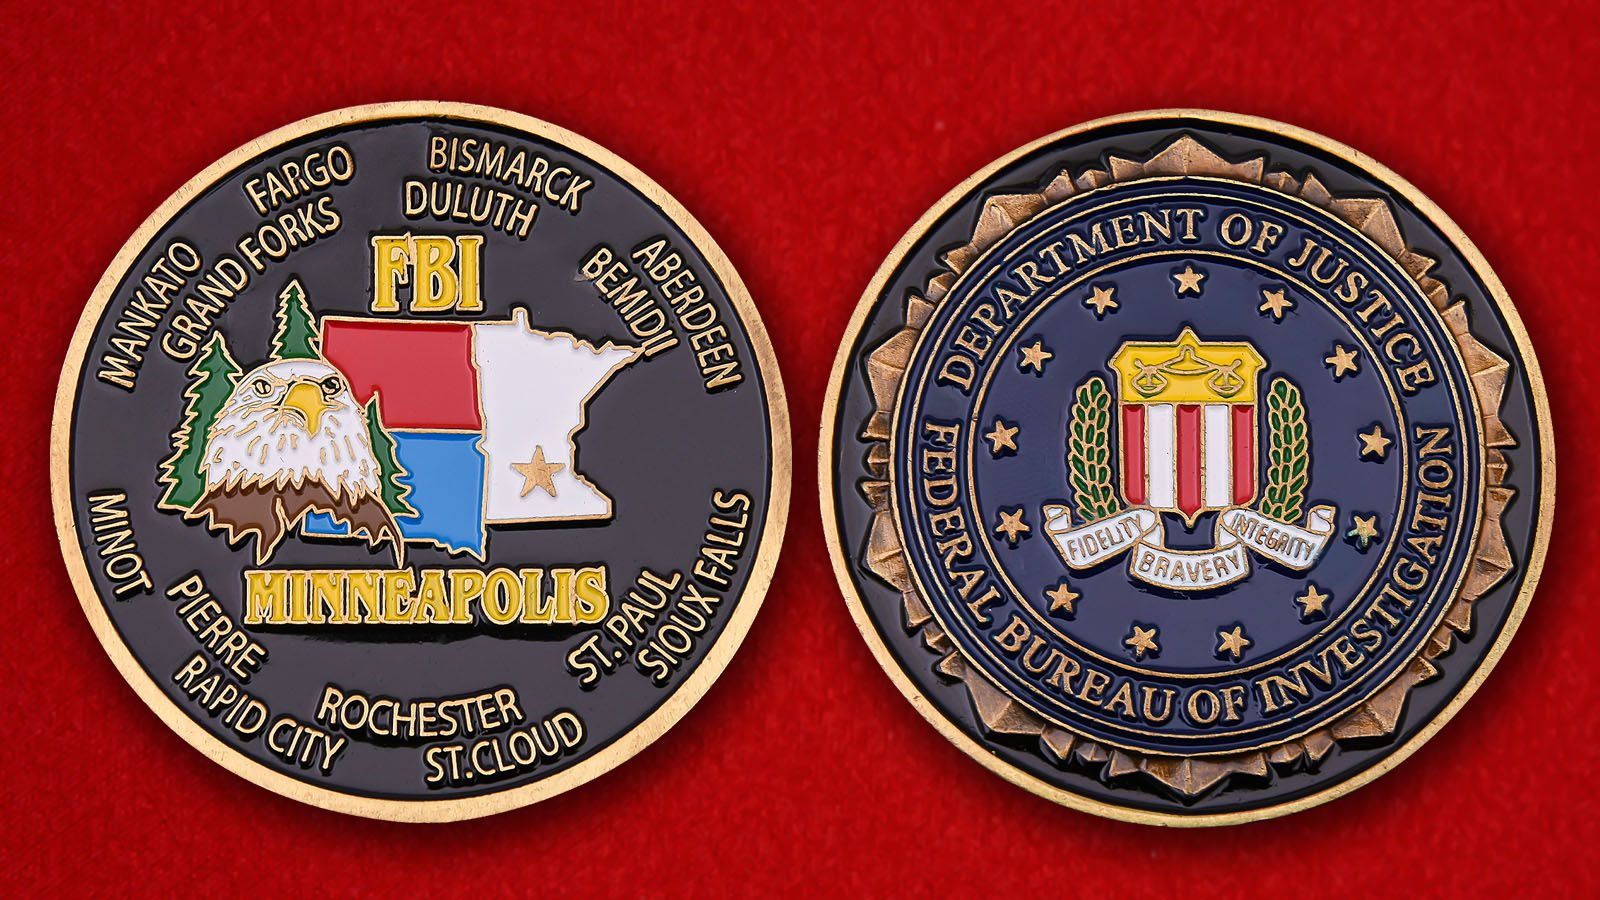 Challenge coin of the Department of Justice FBI in Minneapolis - obverse and reverse